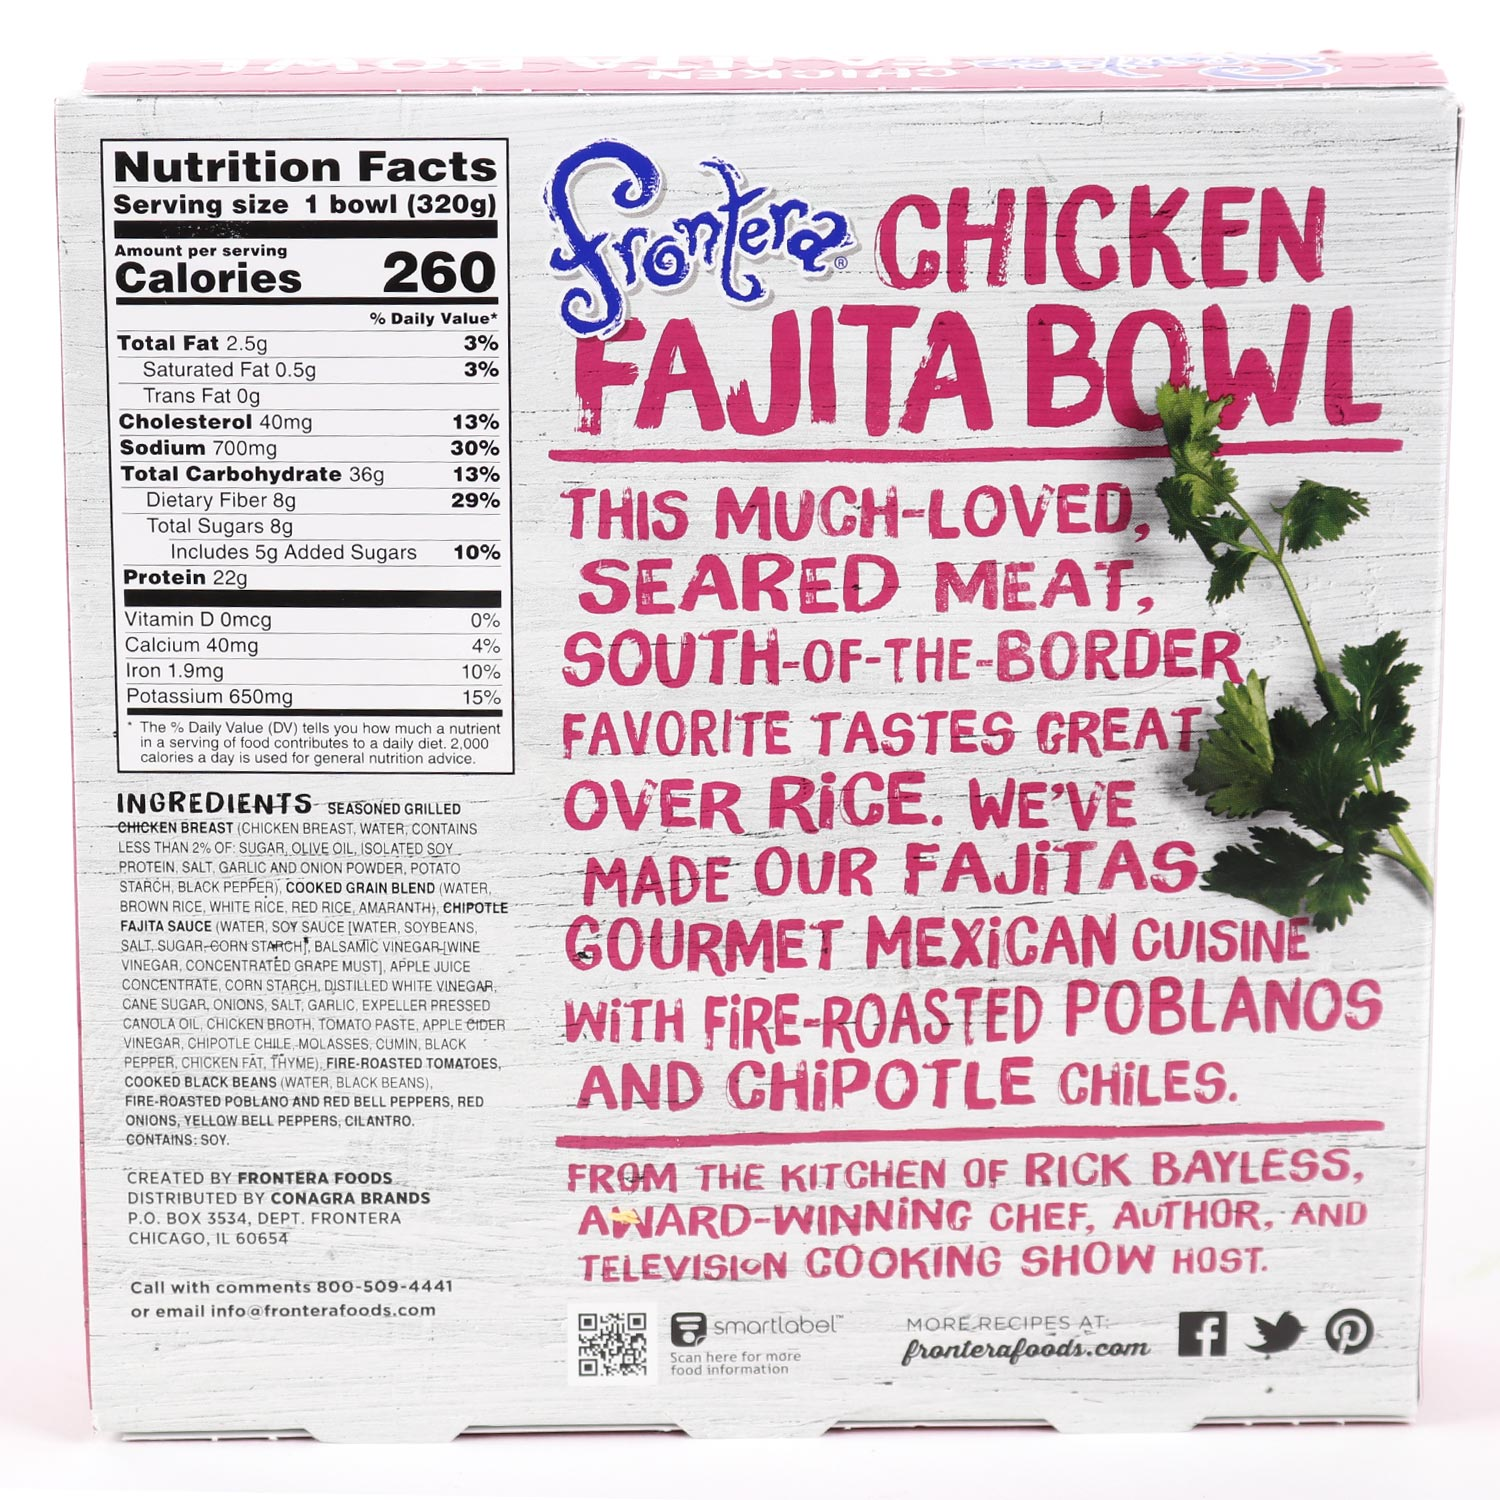 Bowl, Chicken Fajita